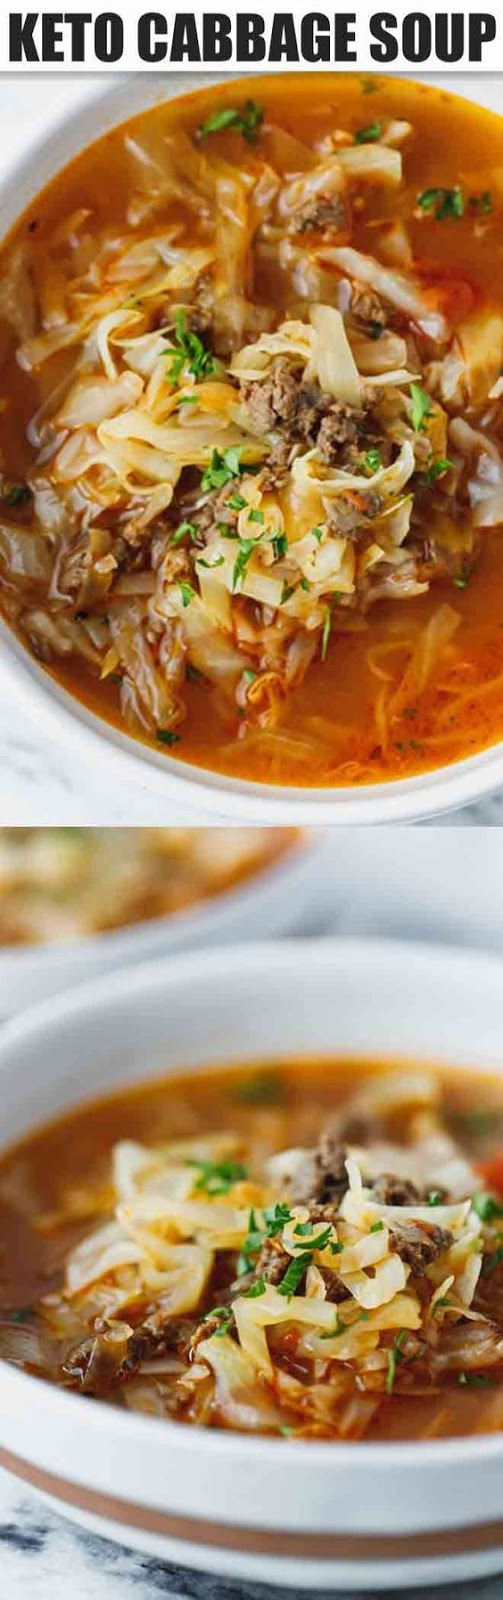 Keto Cabbage Soup Recipe